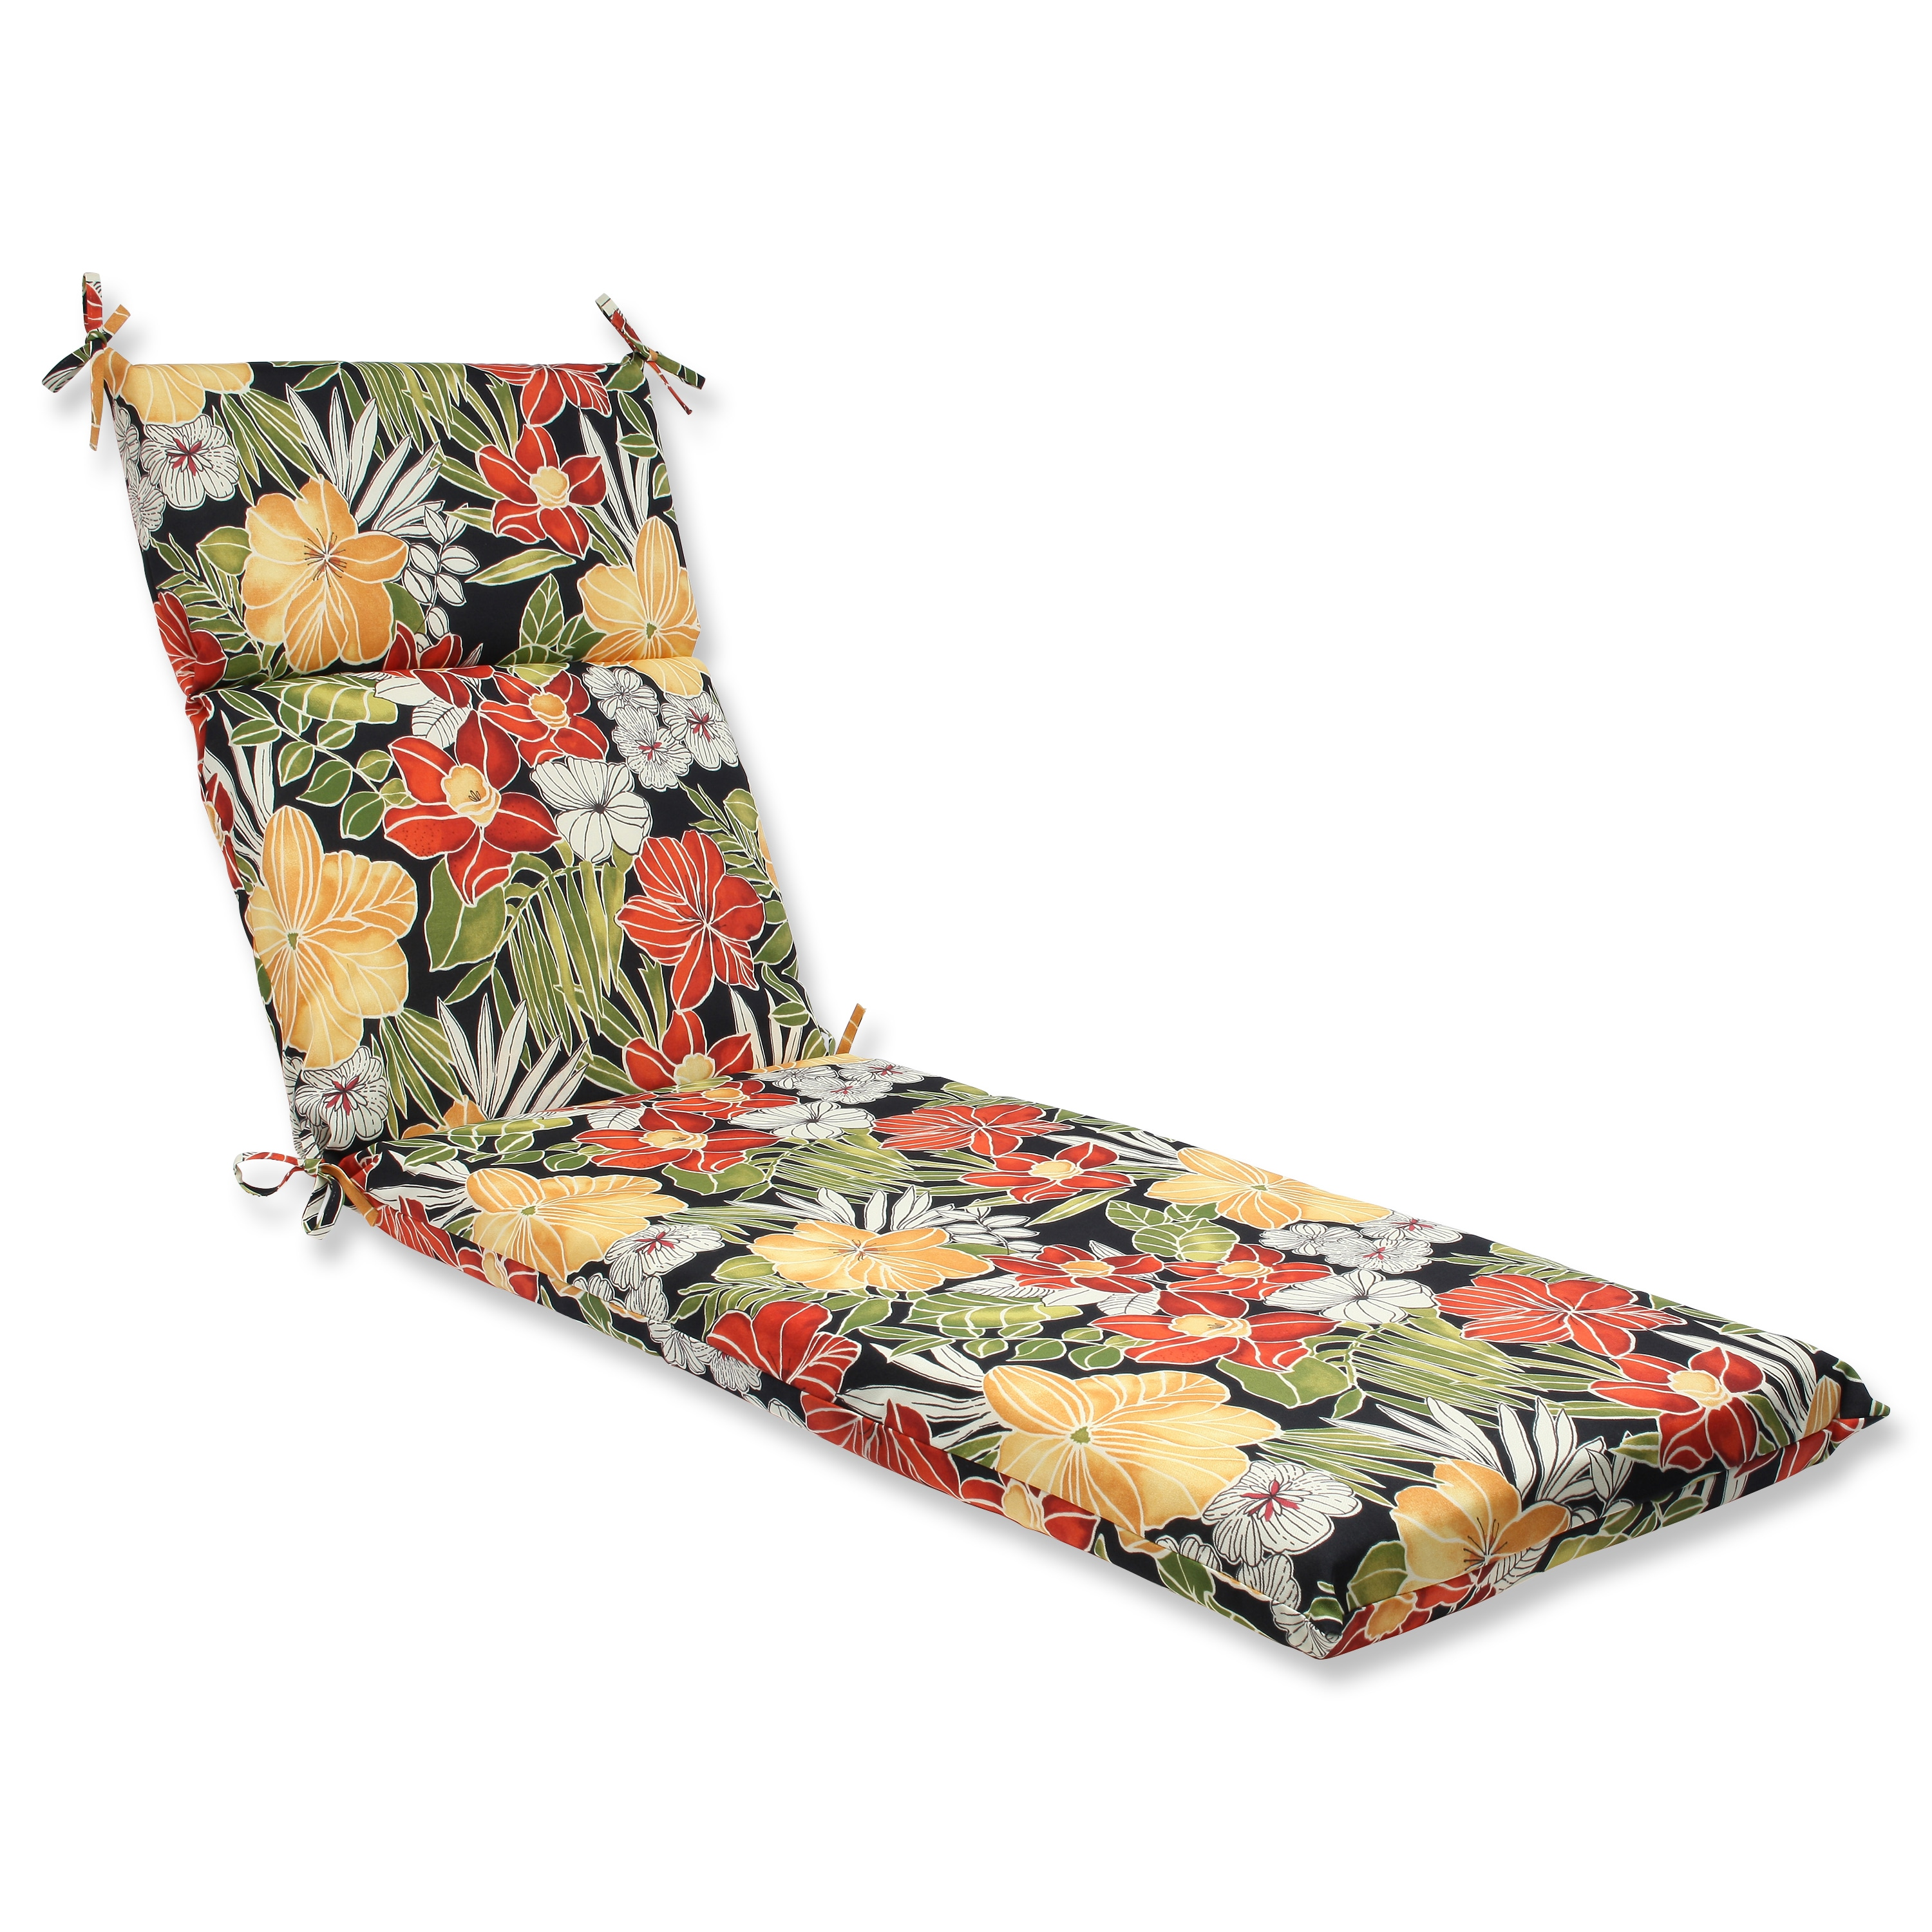 Pillow Perfect Outdoor Clemens Noir Chaise Lounge Cushion